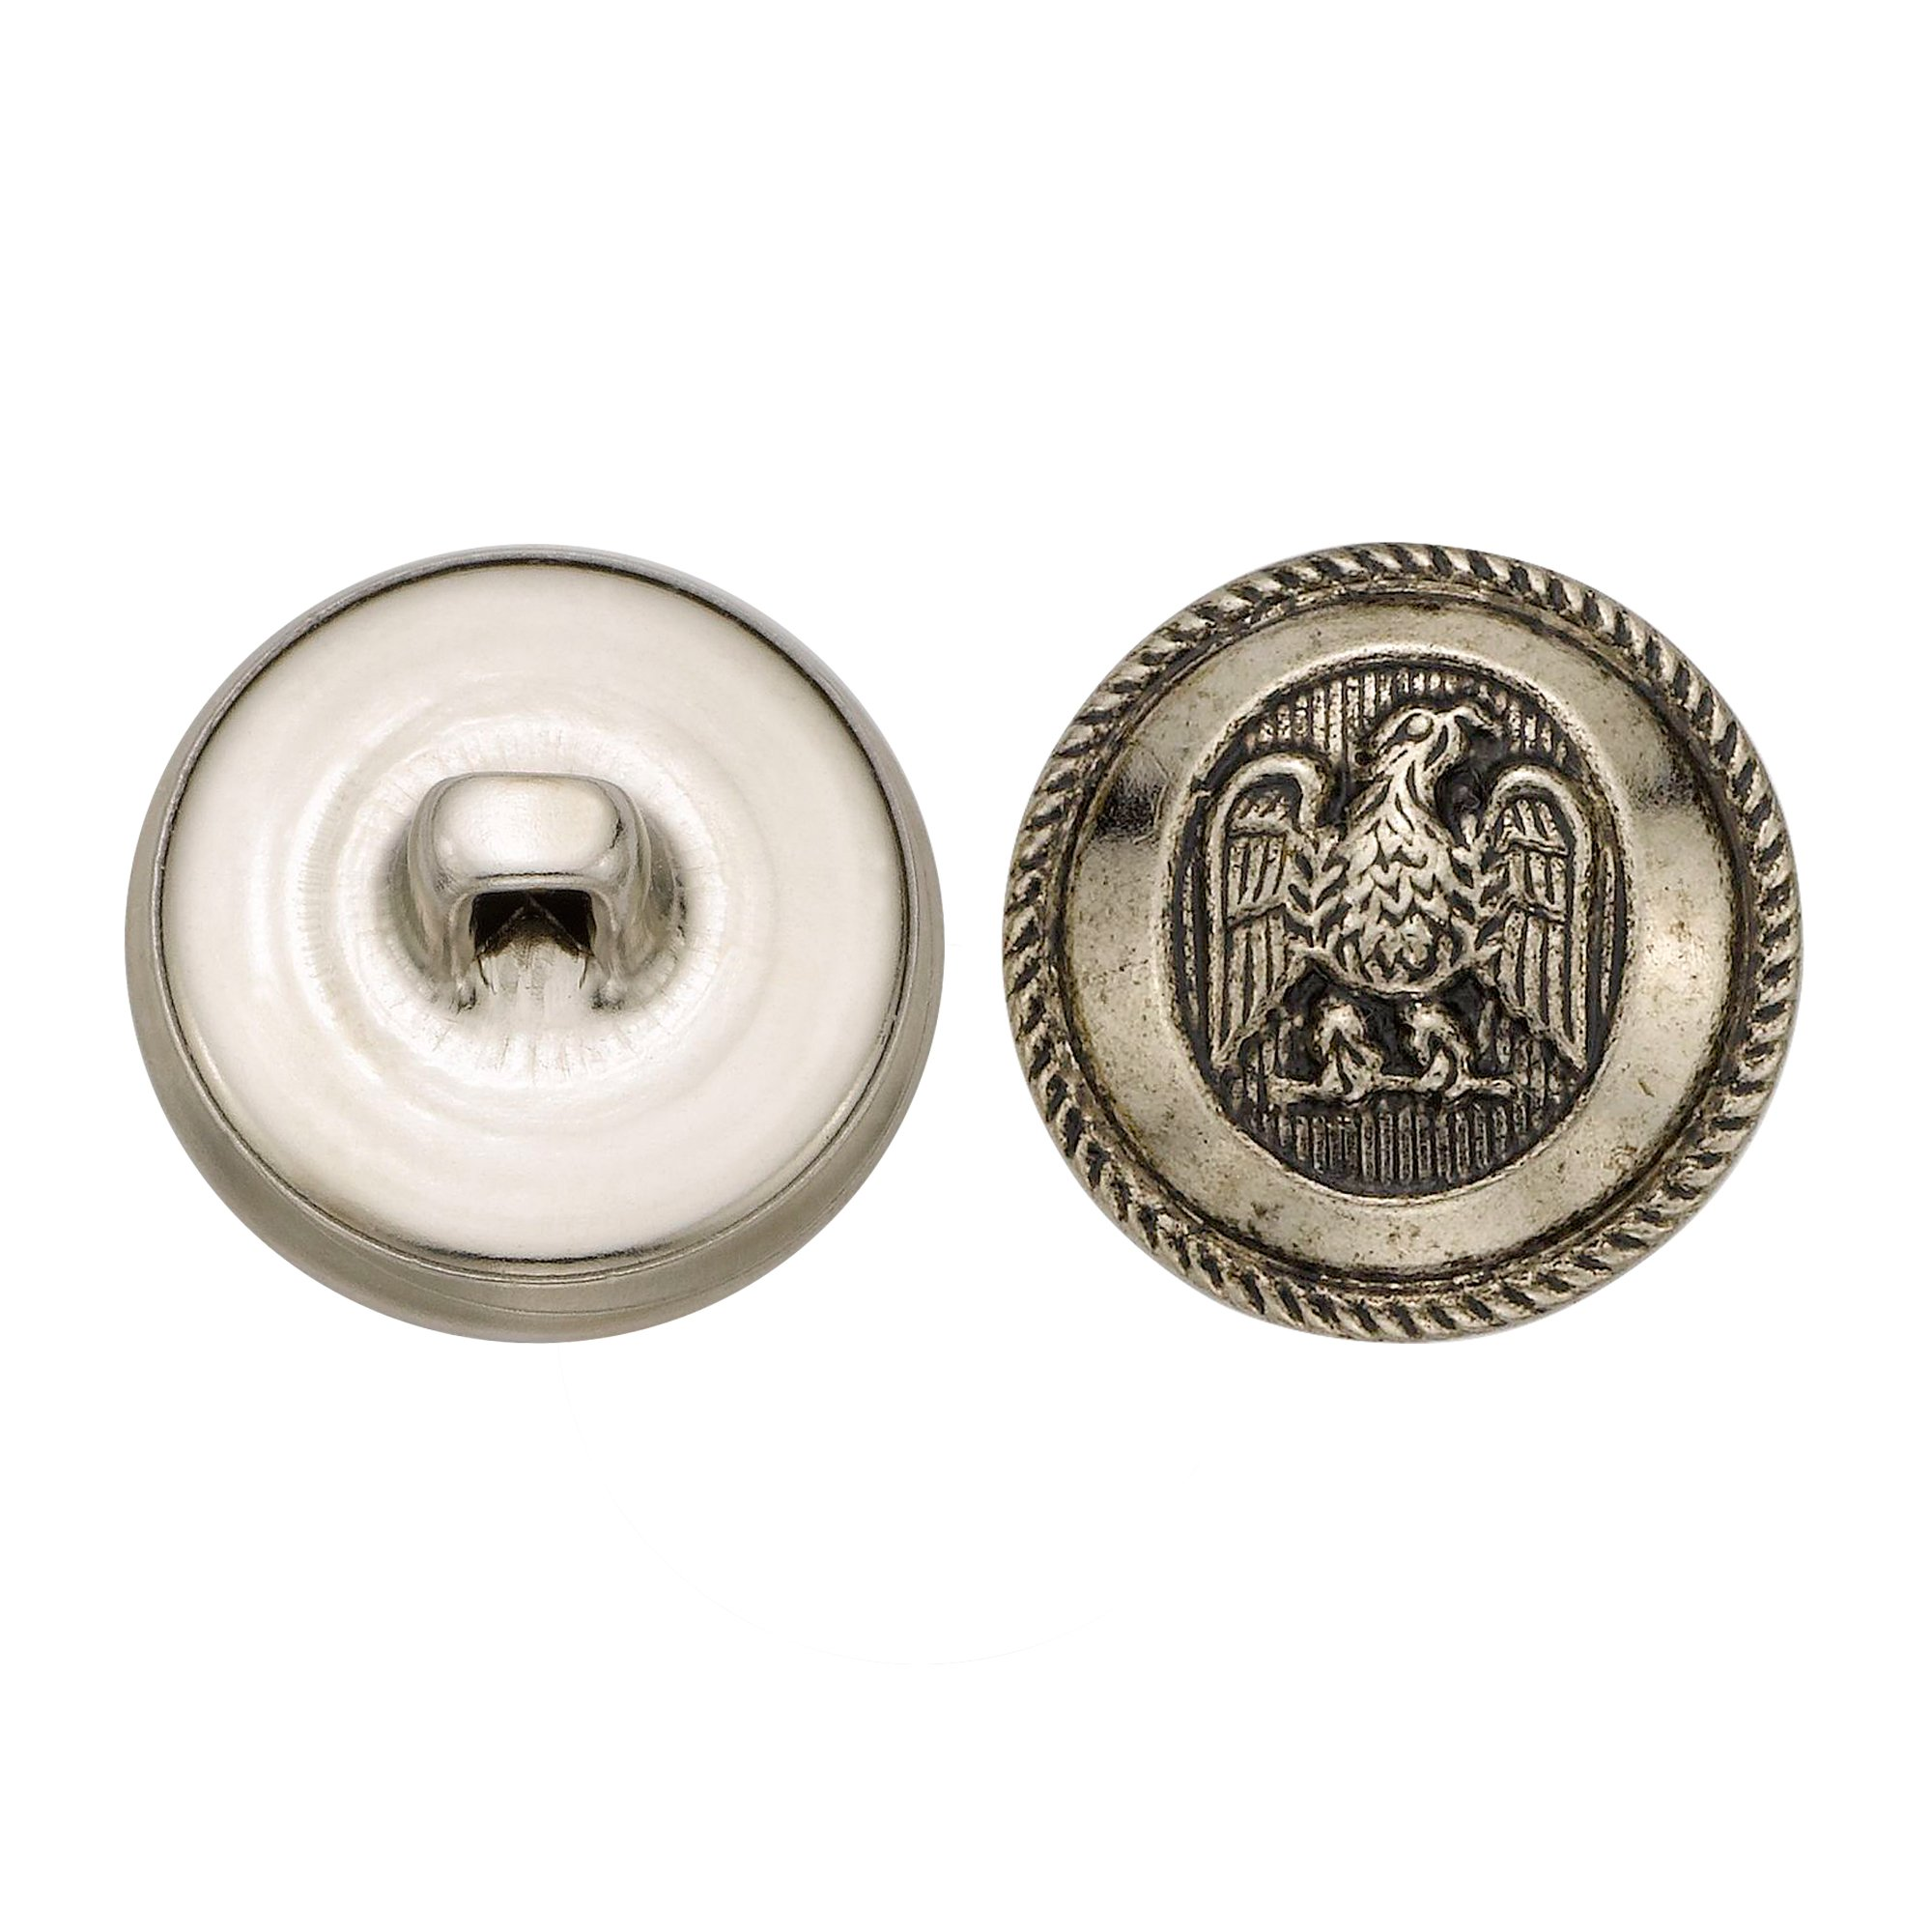 C&C Metal Products 5064 Rope Rim Usa Eagle Metal Button, Size 30 Ligne, Antique Nickel, 36-Pack